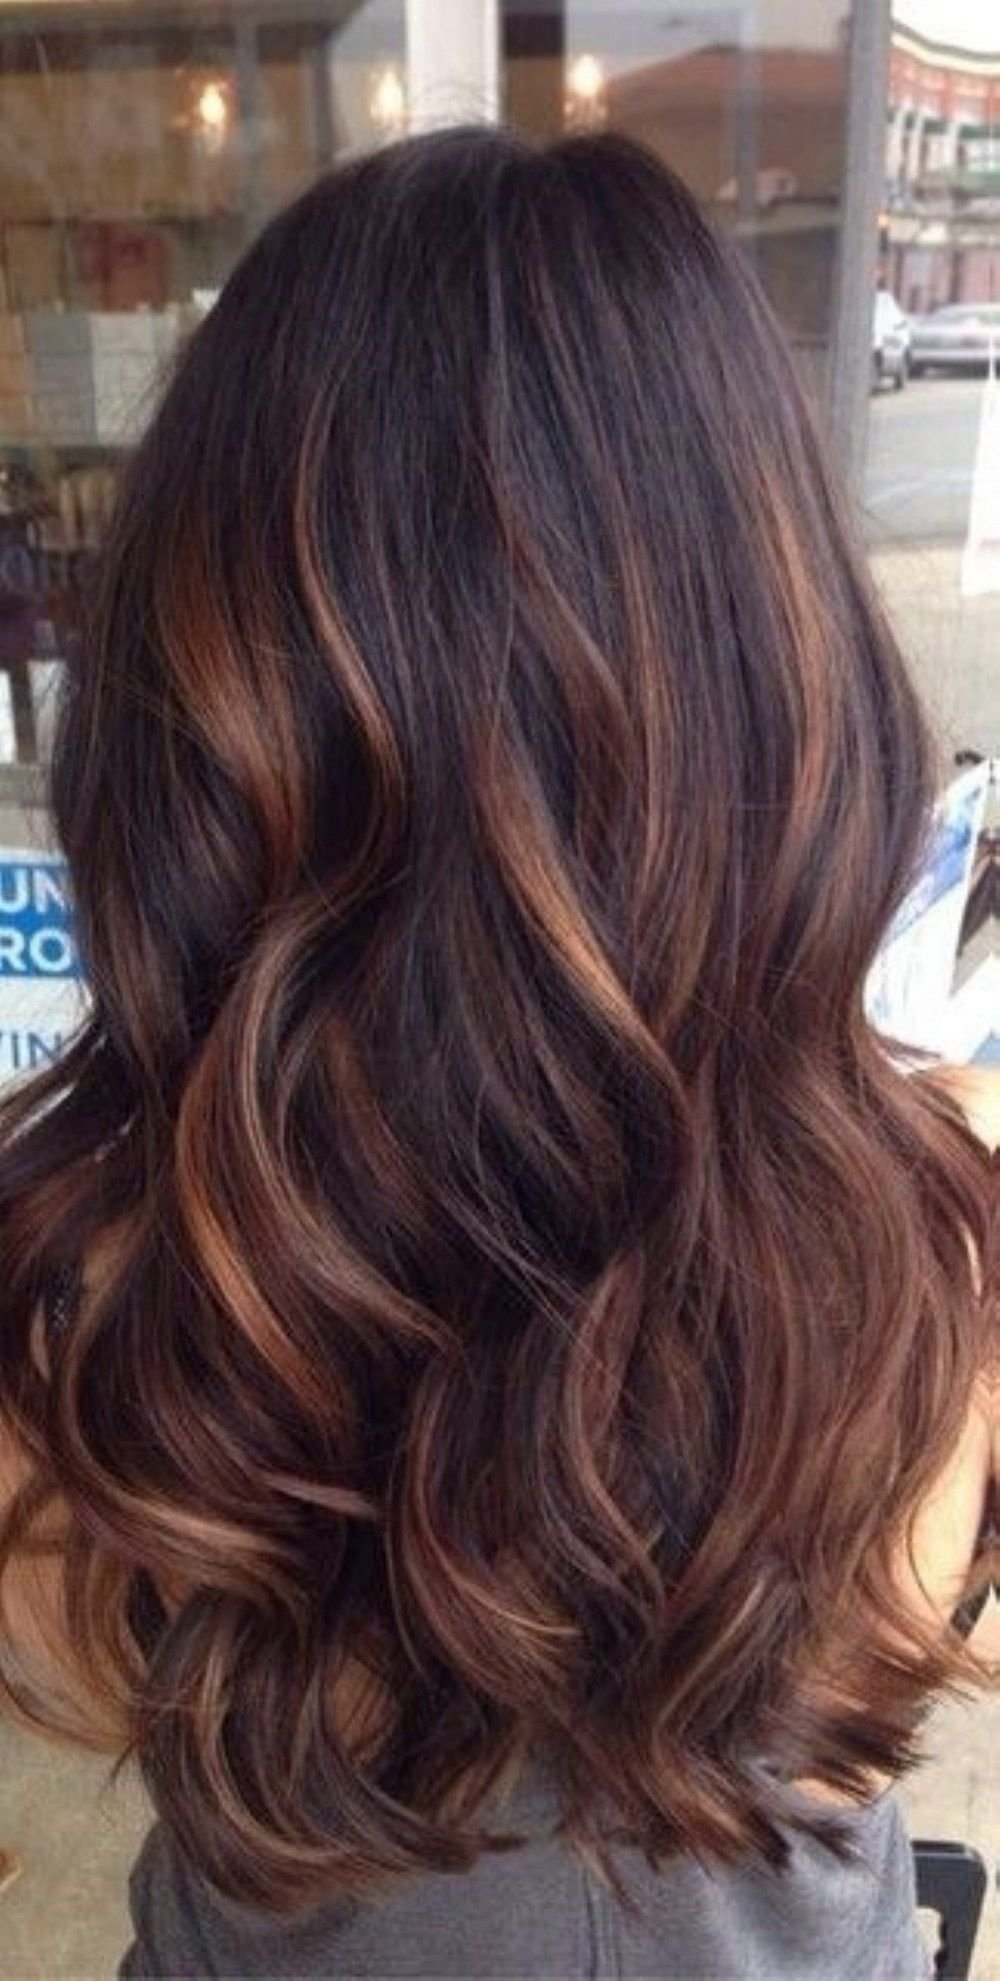 10 Ideal Hair Coloring Ideas For Long Hair top brunette hair color ideas to try 2017 10 hair pinterest 3 2020